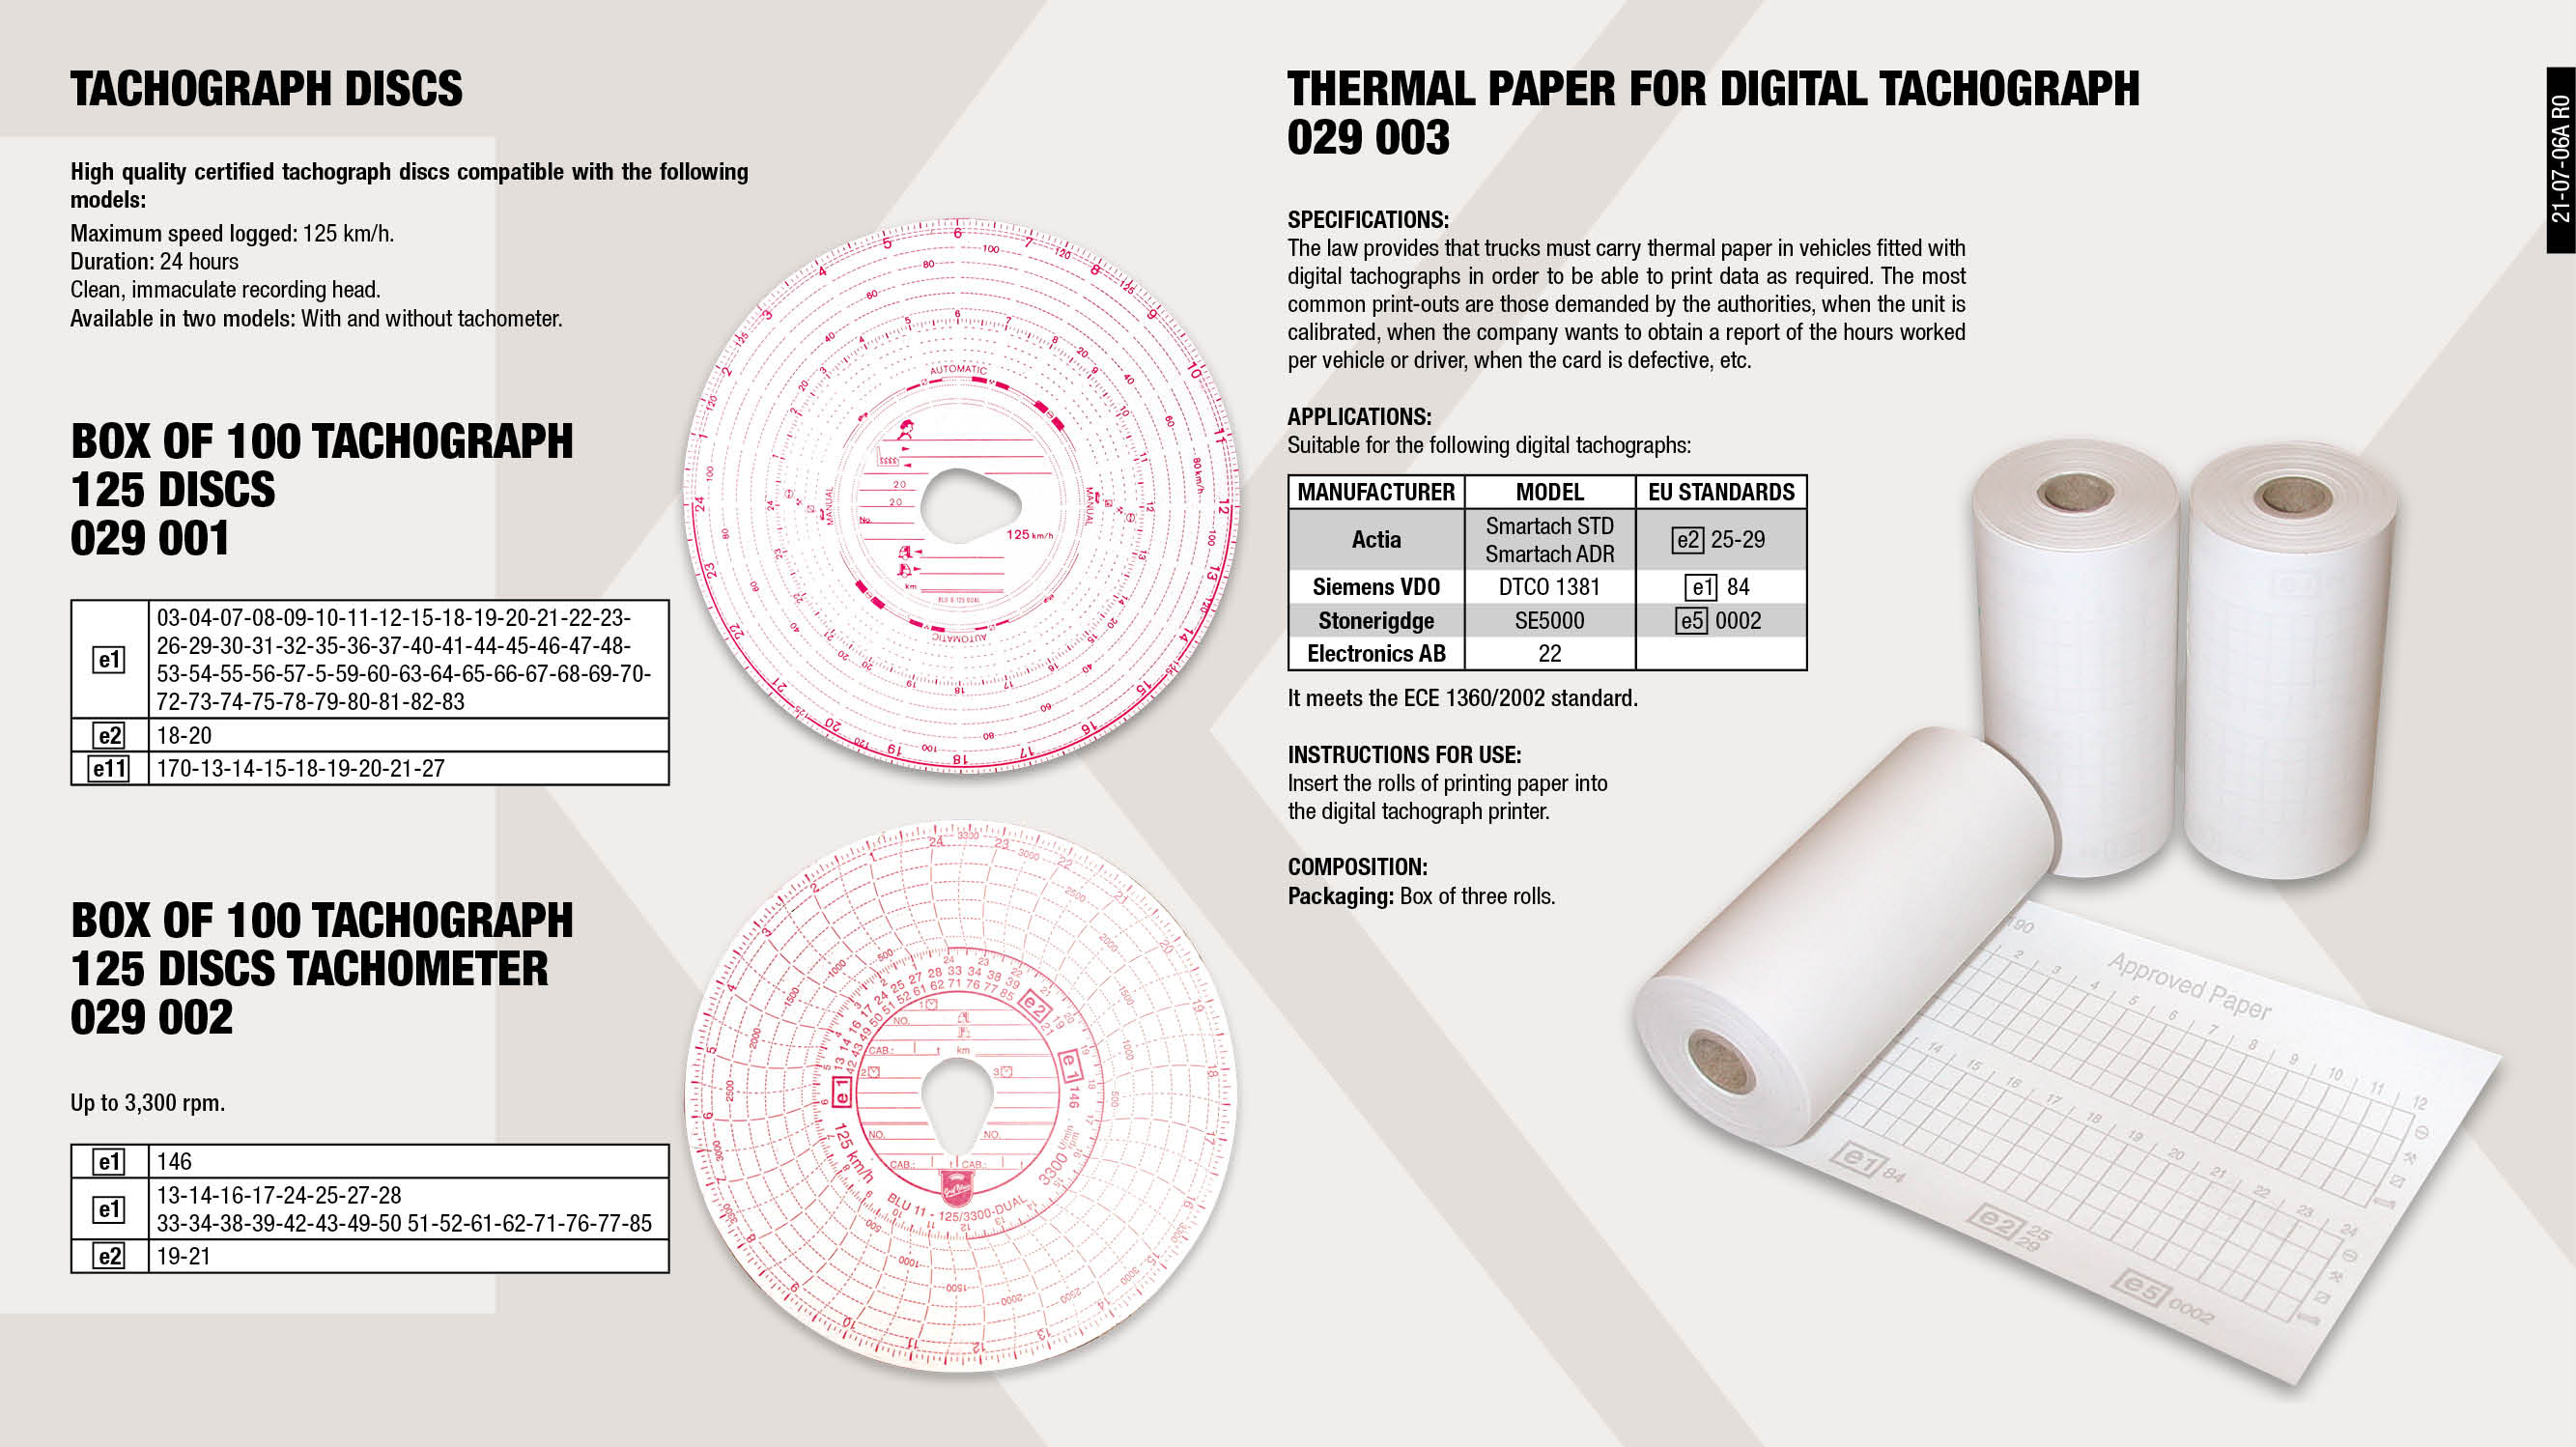 BOX OF 100 TACHOGRAPH CHARTS 125 KM/H.                      ,  									BOX OF 100 TACHOGRAPH CHARTS 125 KM/H. (3.300 RPM)          ,  									BOX OF 3 THERMAL ROLLS FOR DIGITAL TACHOGRAPHS              ,